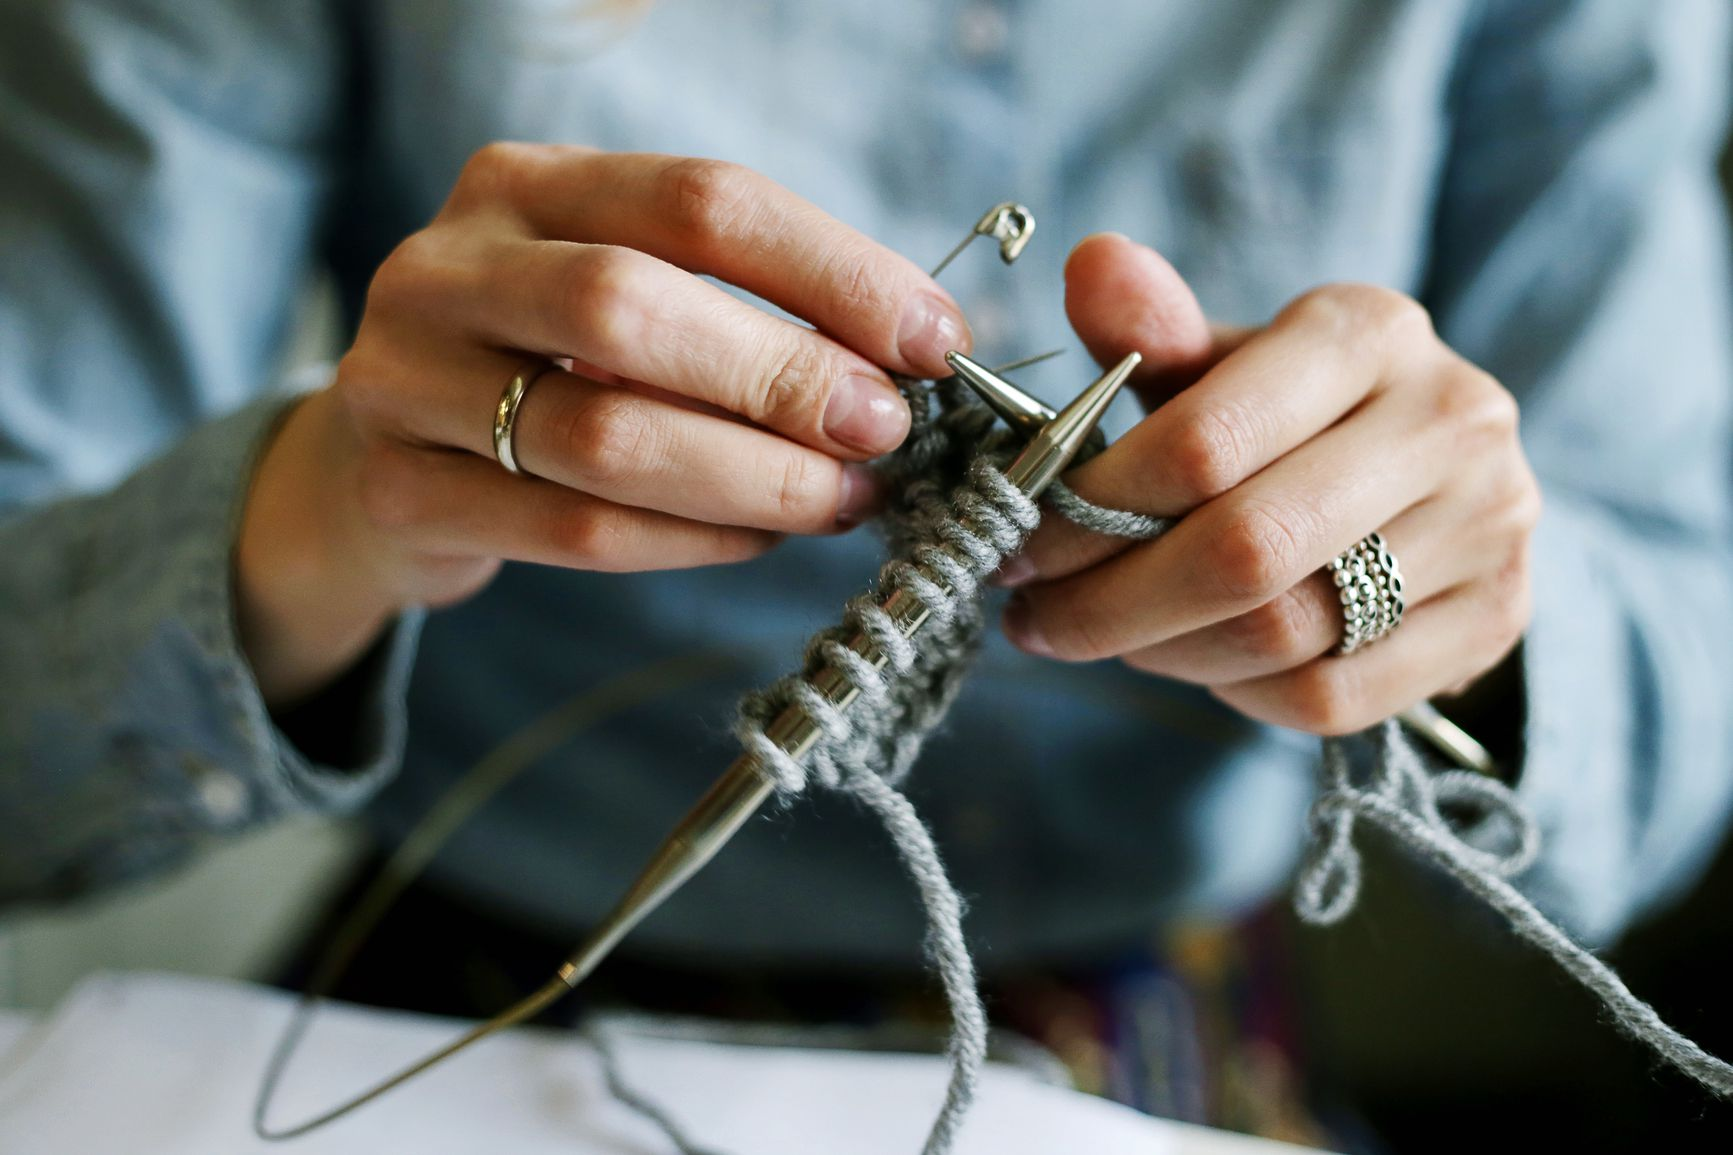 Learn How to Read Knitting Instructions with These Abbreviations